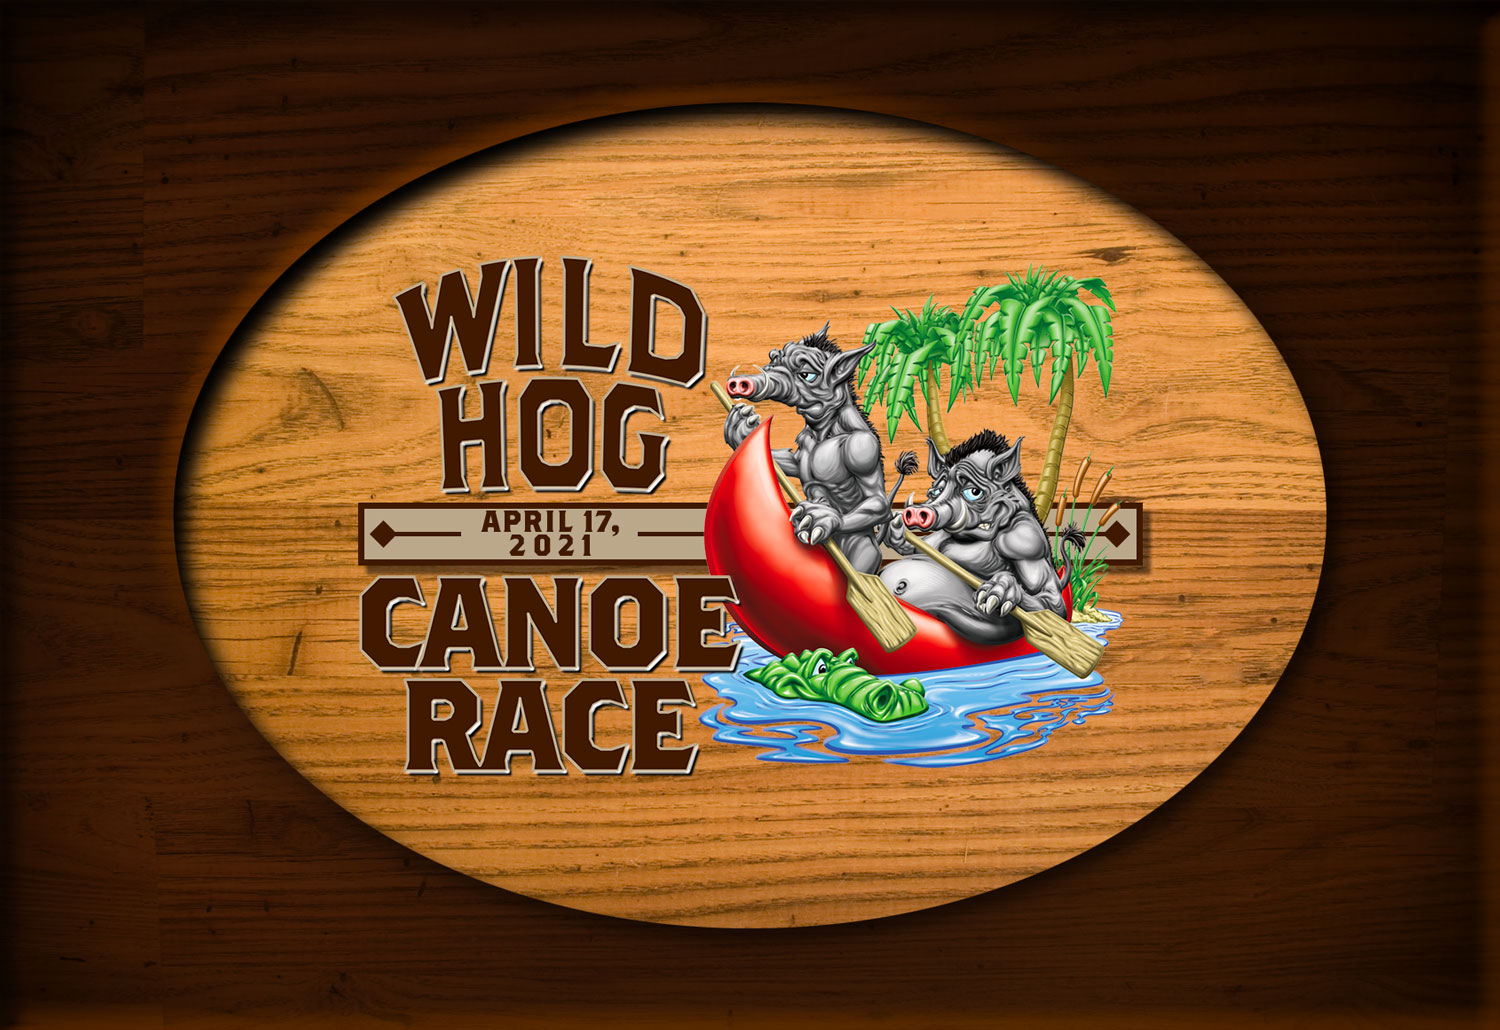 Wild Hog Canoe Race. April 17, 2021. Next to two cartoon hogs in a canoe with a friendly gator in the water.